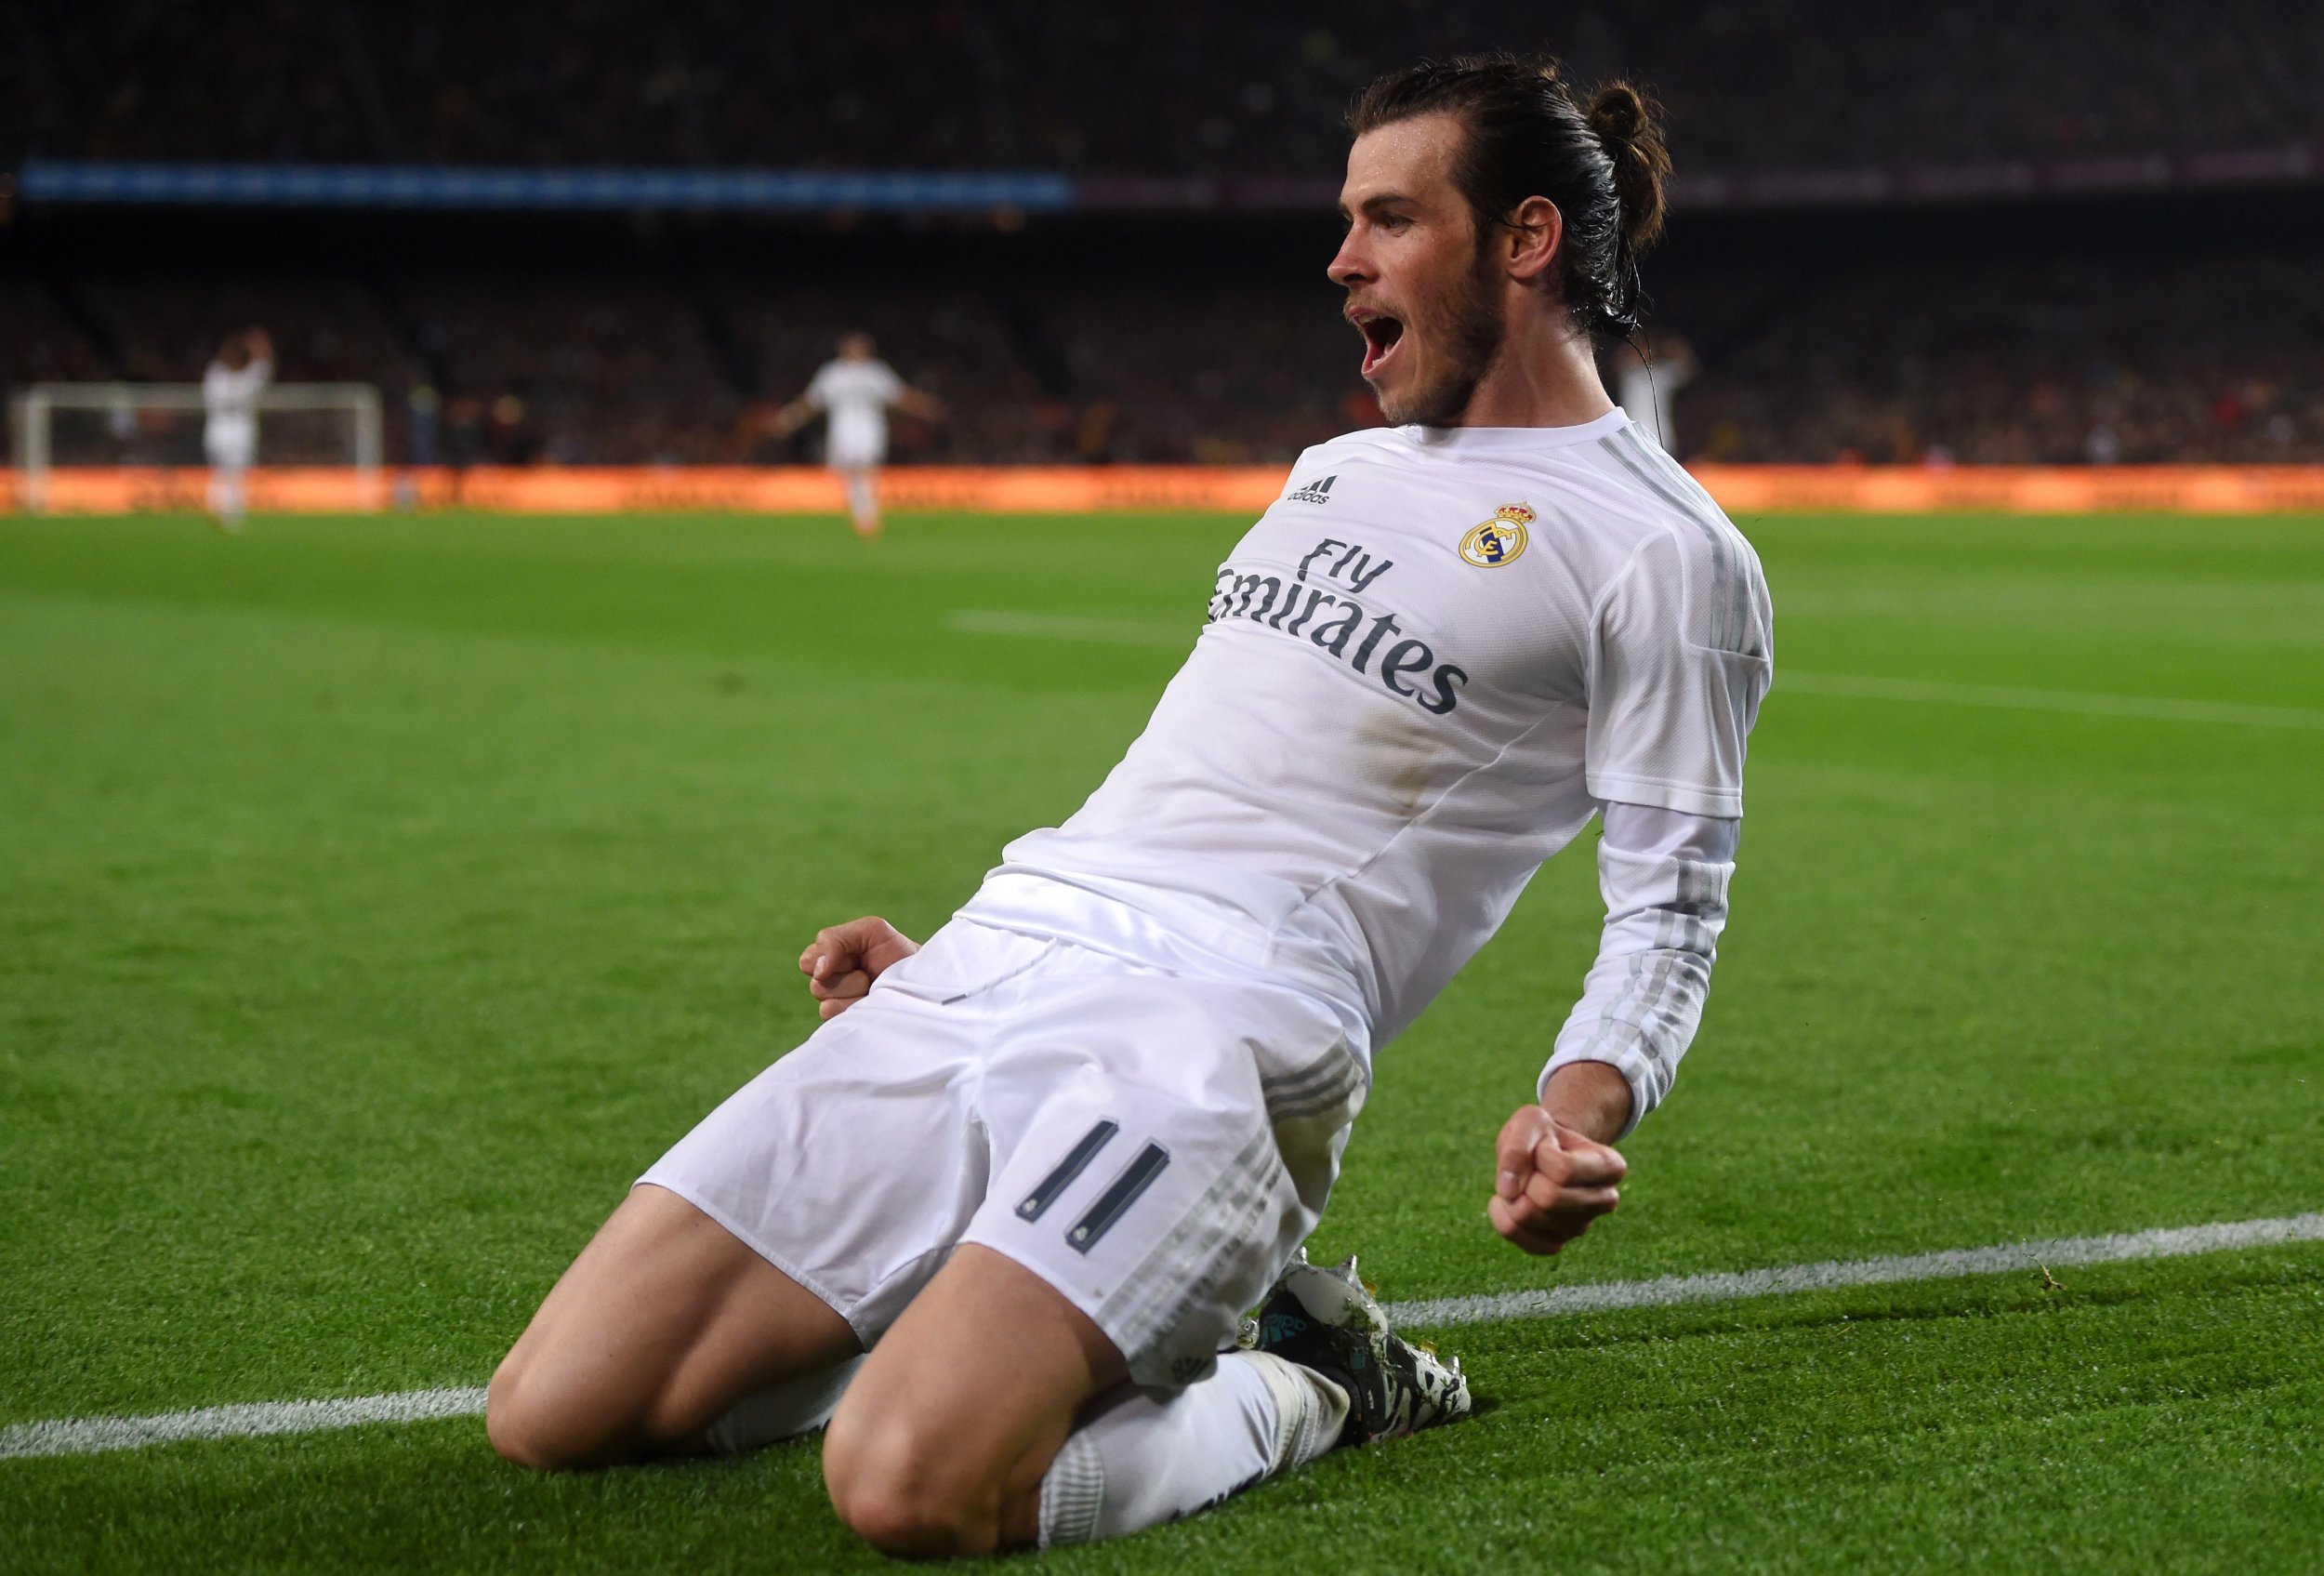 Watch Real Madrid Star Gareth Bale Posts Sensational Strike To